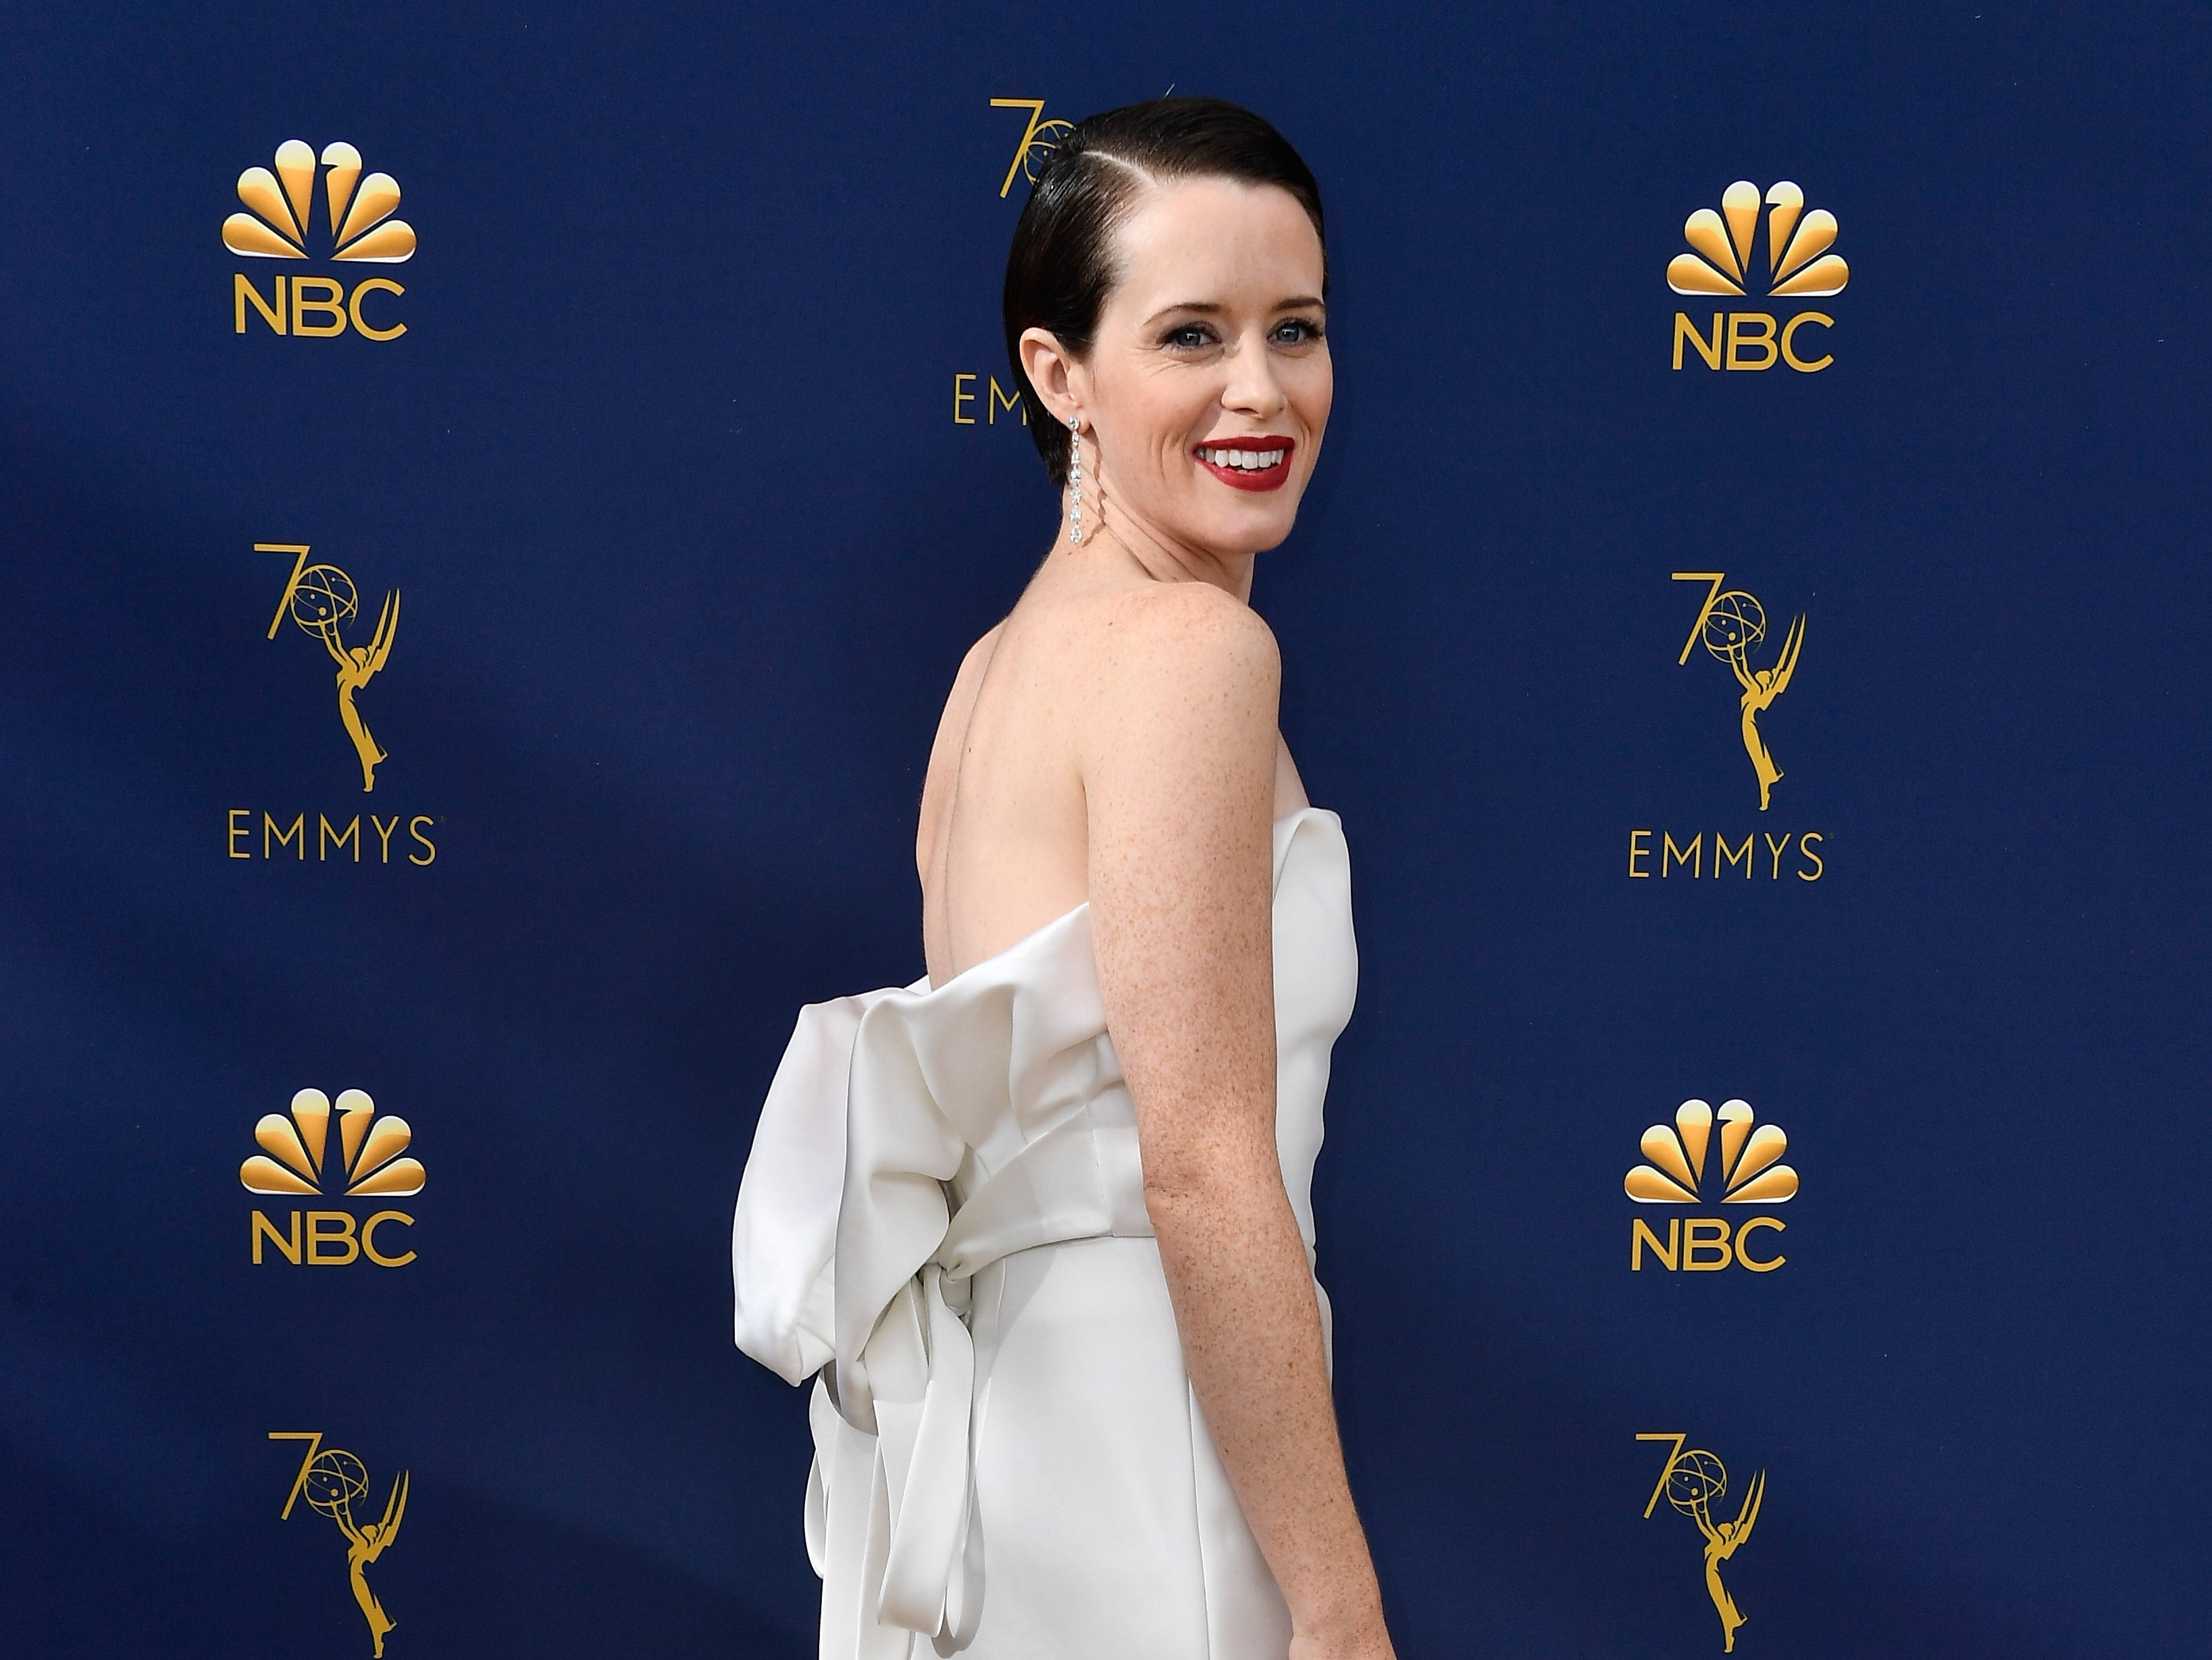 Emmys 2018: Worst-dressed list, from questionable patterns to odd shapes